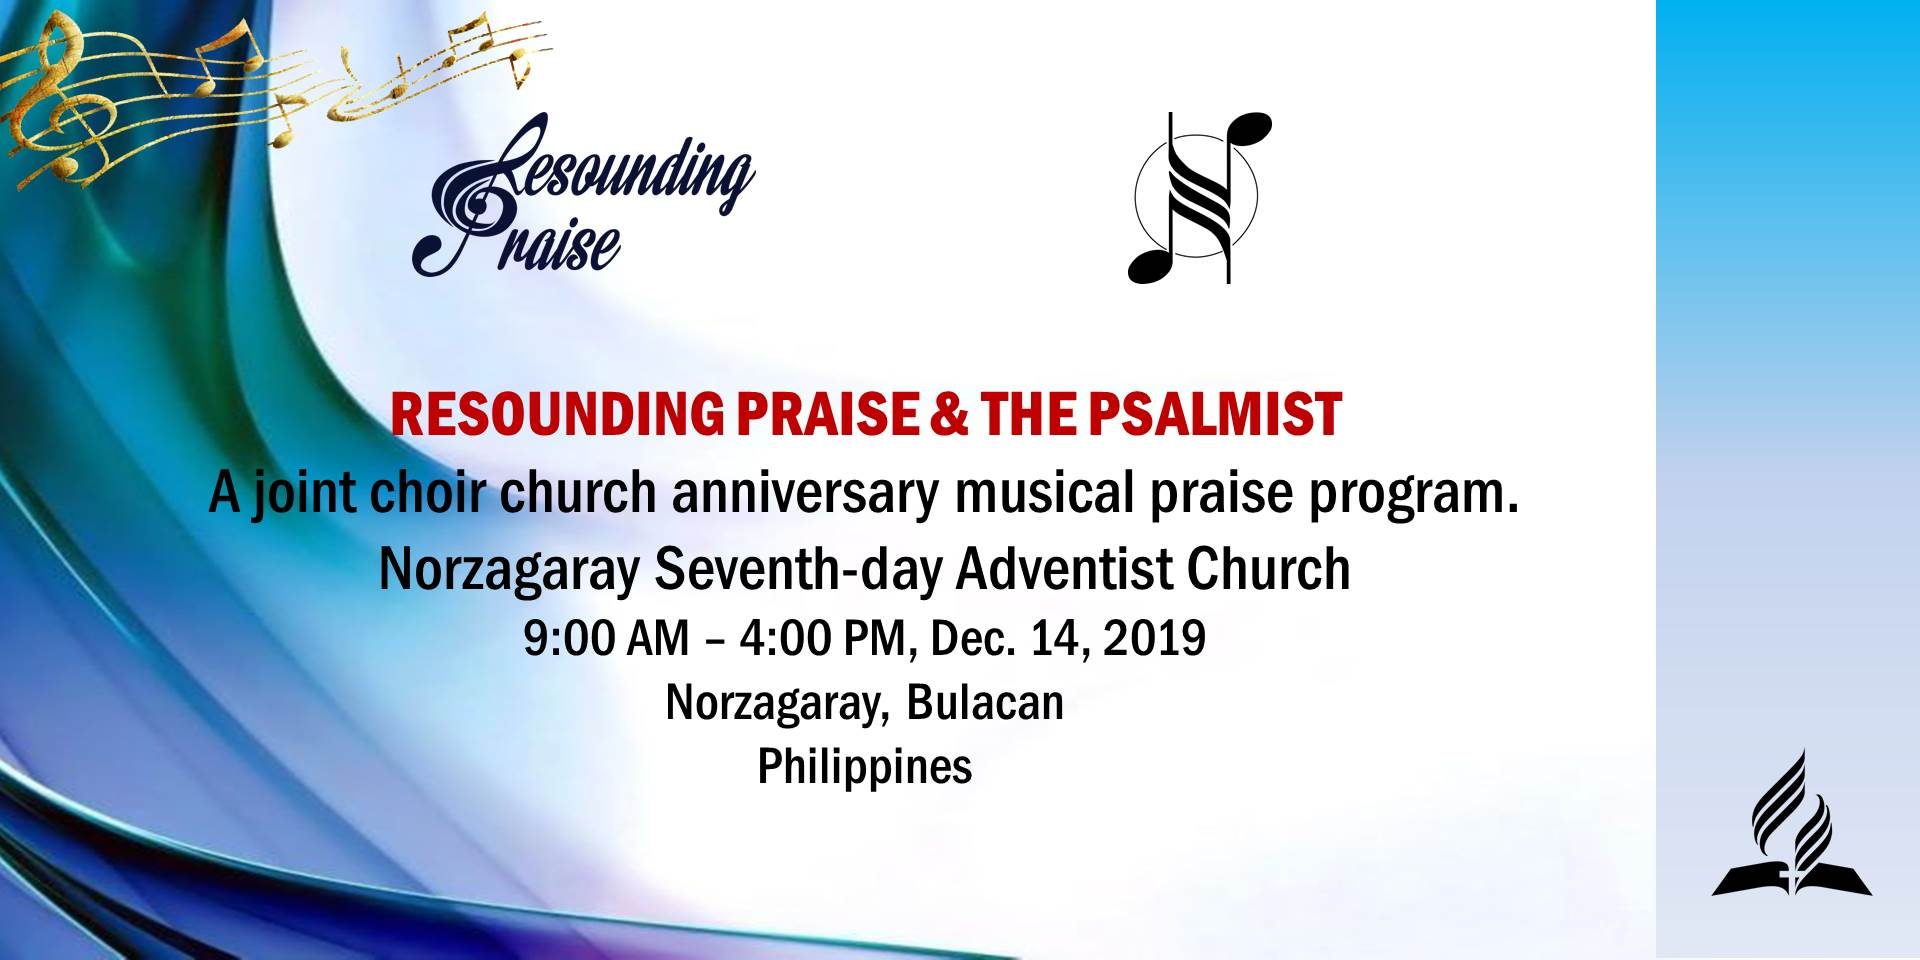 Resounding Praise & The Psalmist Joint Choir